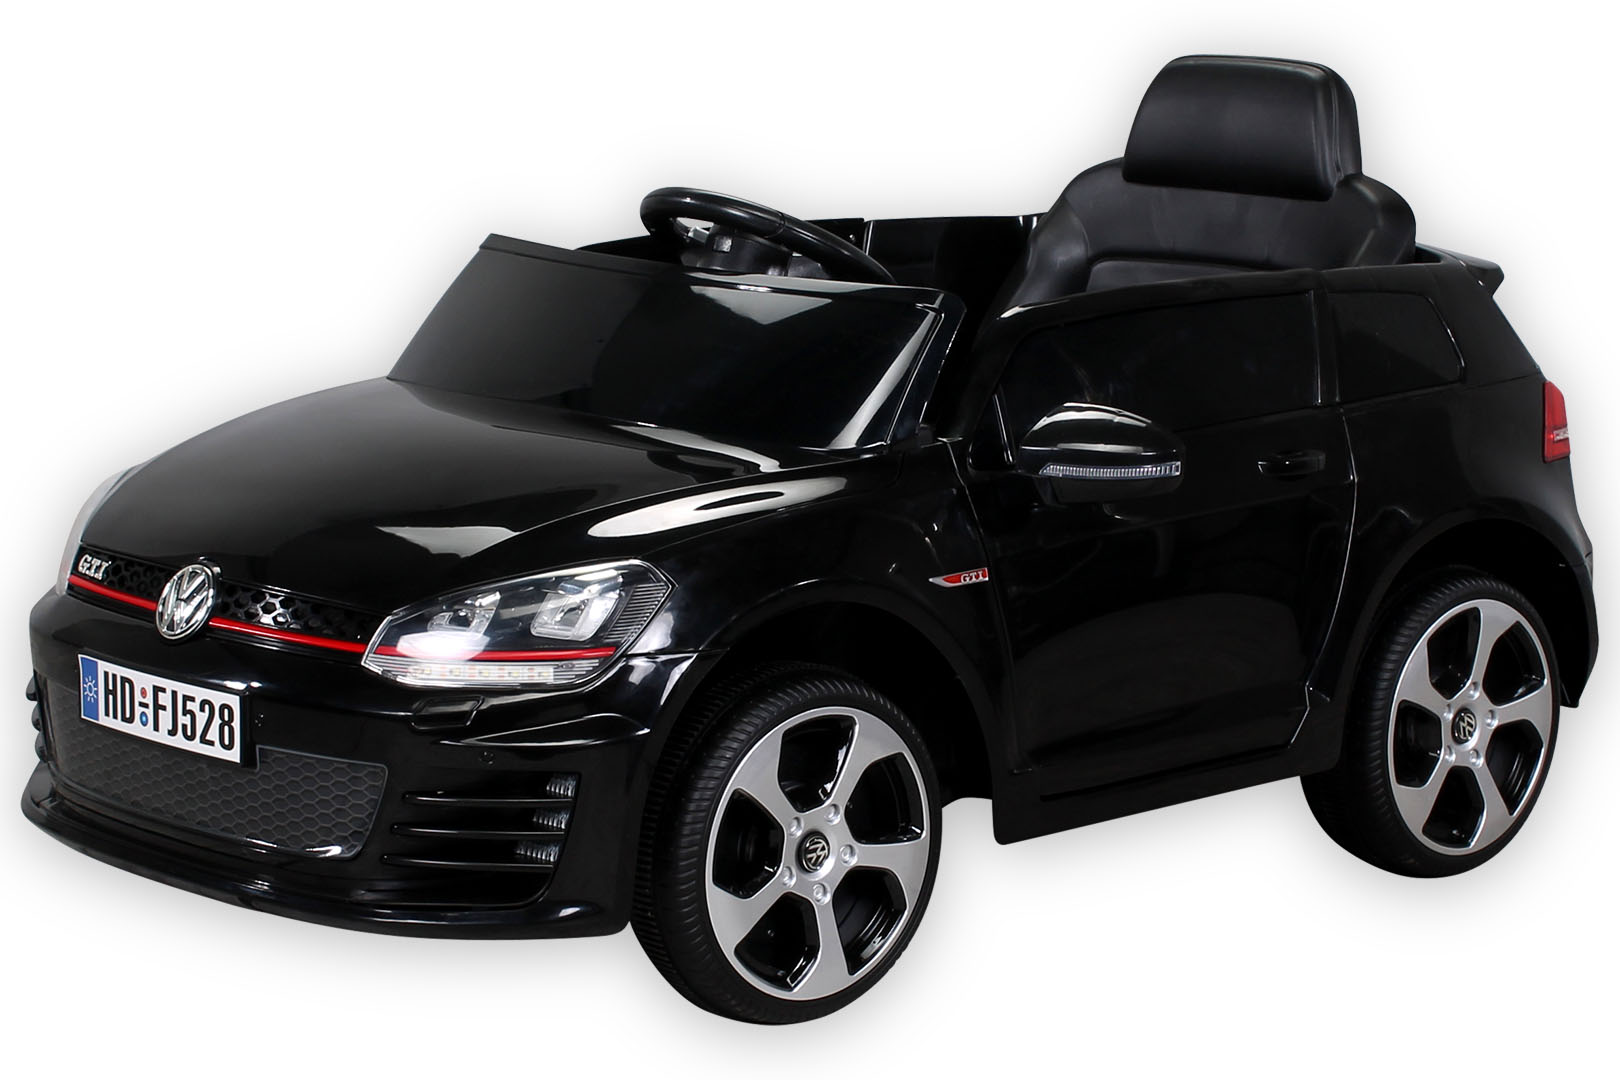 elektroauto vw golf gti kinderauto kinderfahrzeug kinder elektro auto 7ah akku ebay. Black Bedroom Furniture Sets. Home Design Ideas